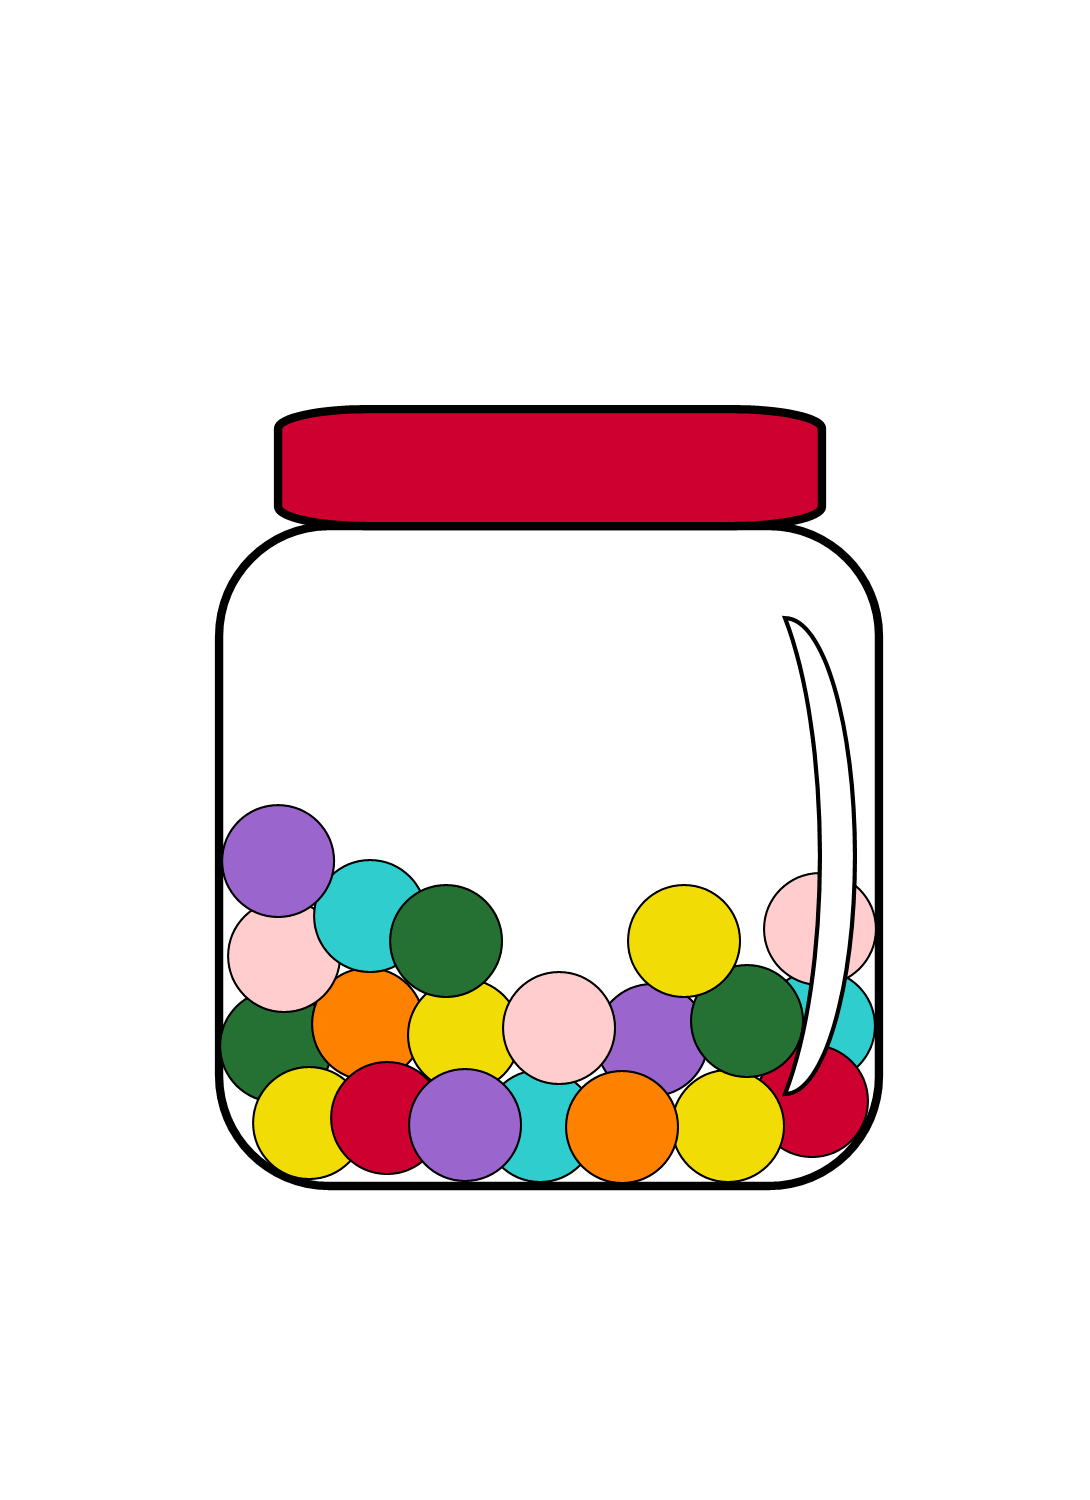 Fractions Clipart Cookie Fractions Cookie Transparent